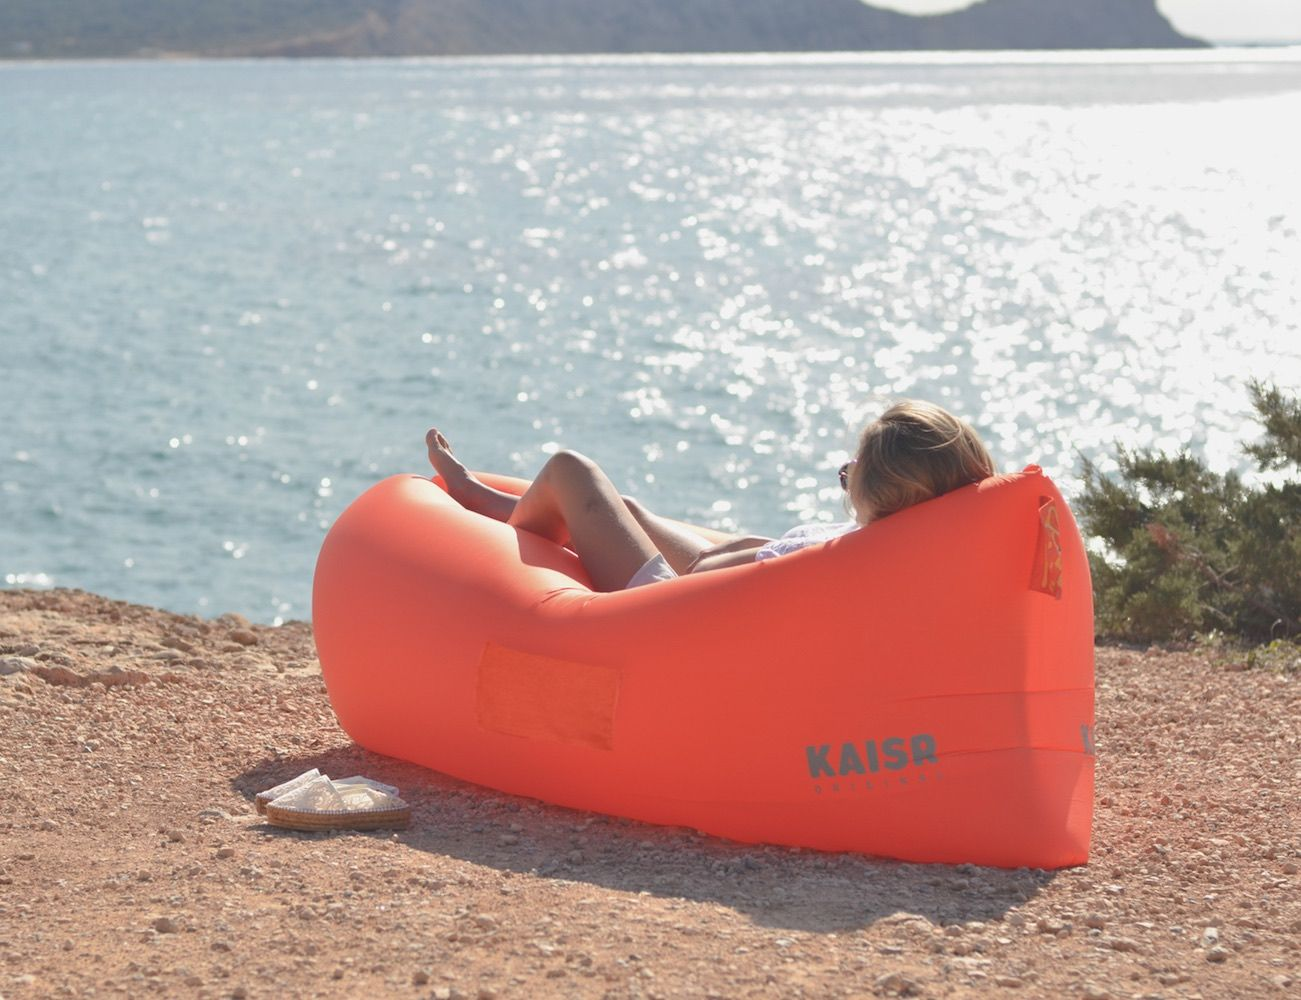 kaisr inflatable air lounge comfy originals and beach